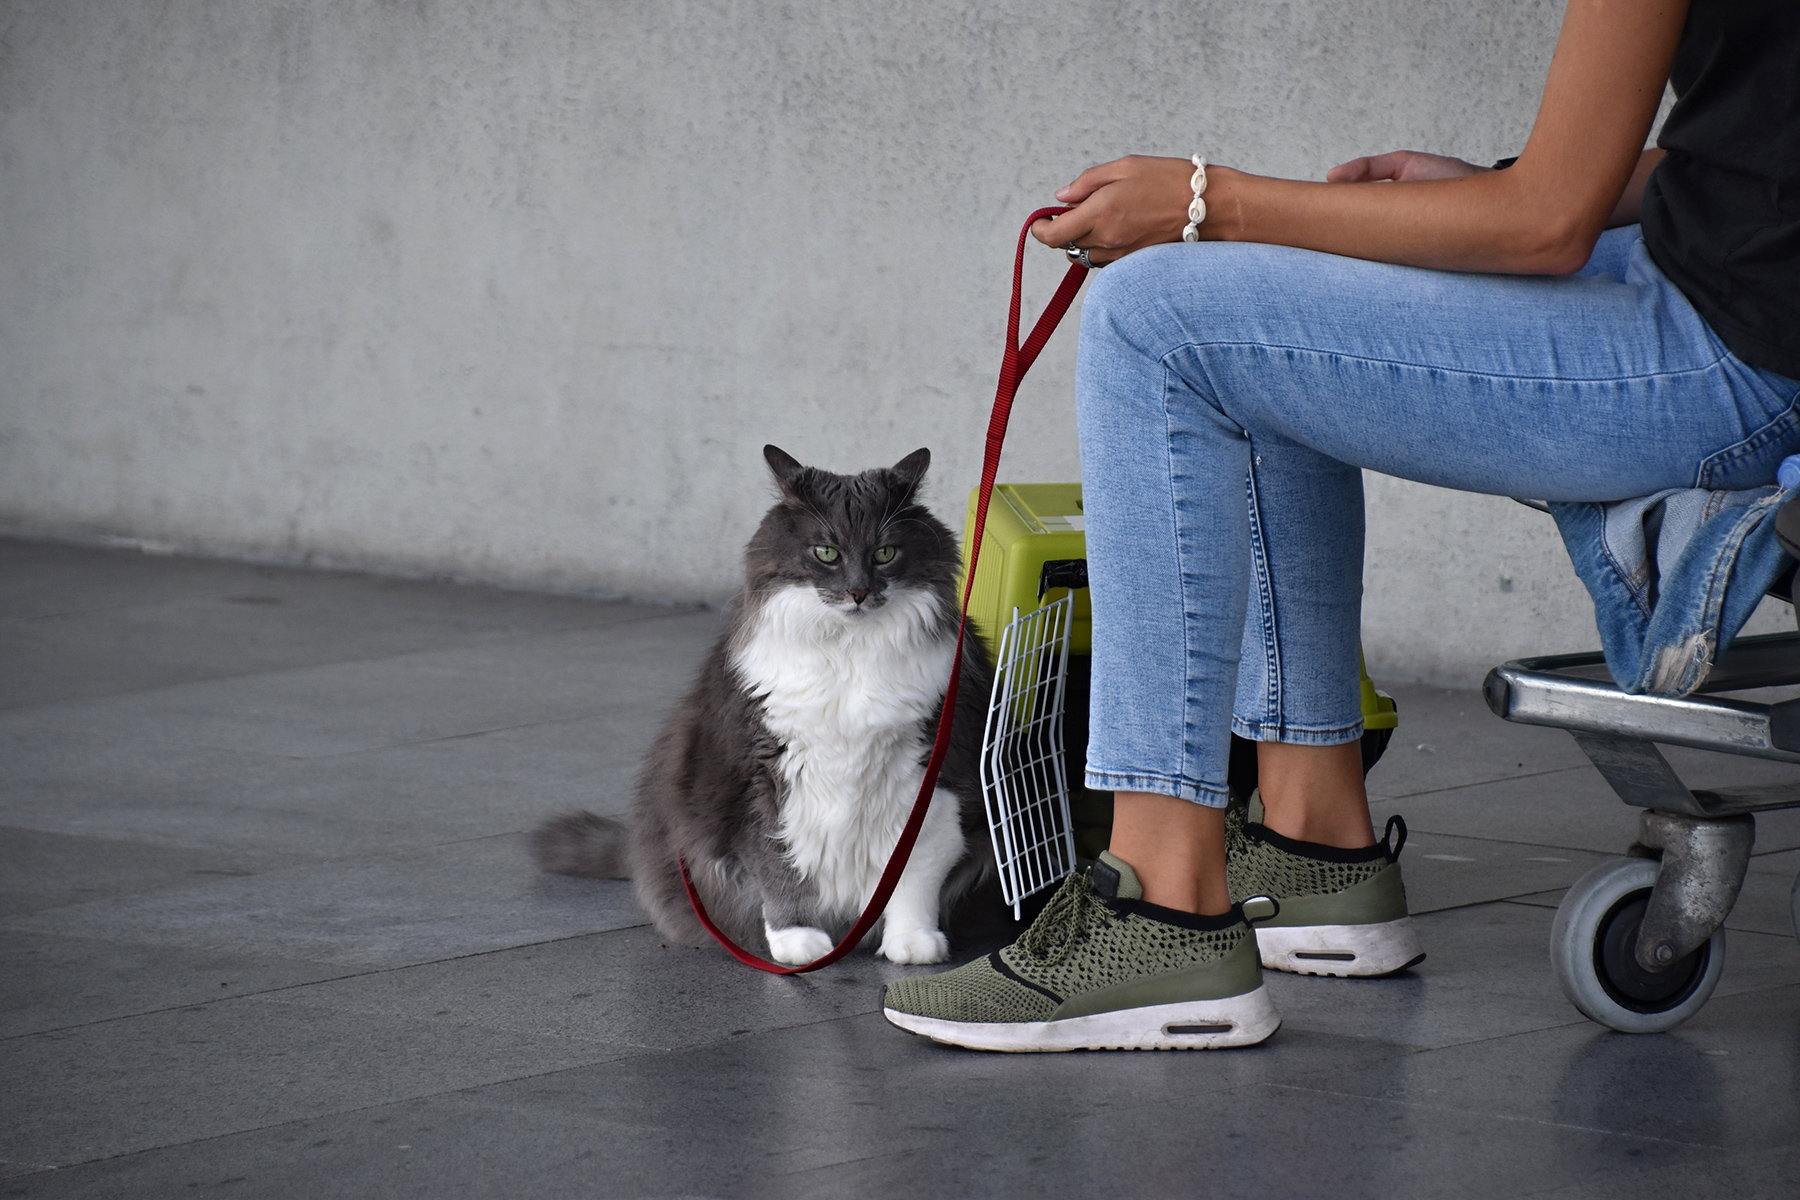 A cat at an airport